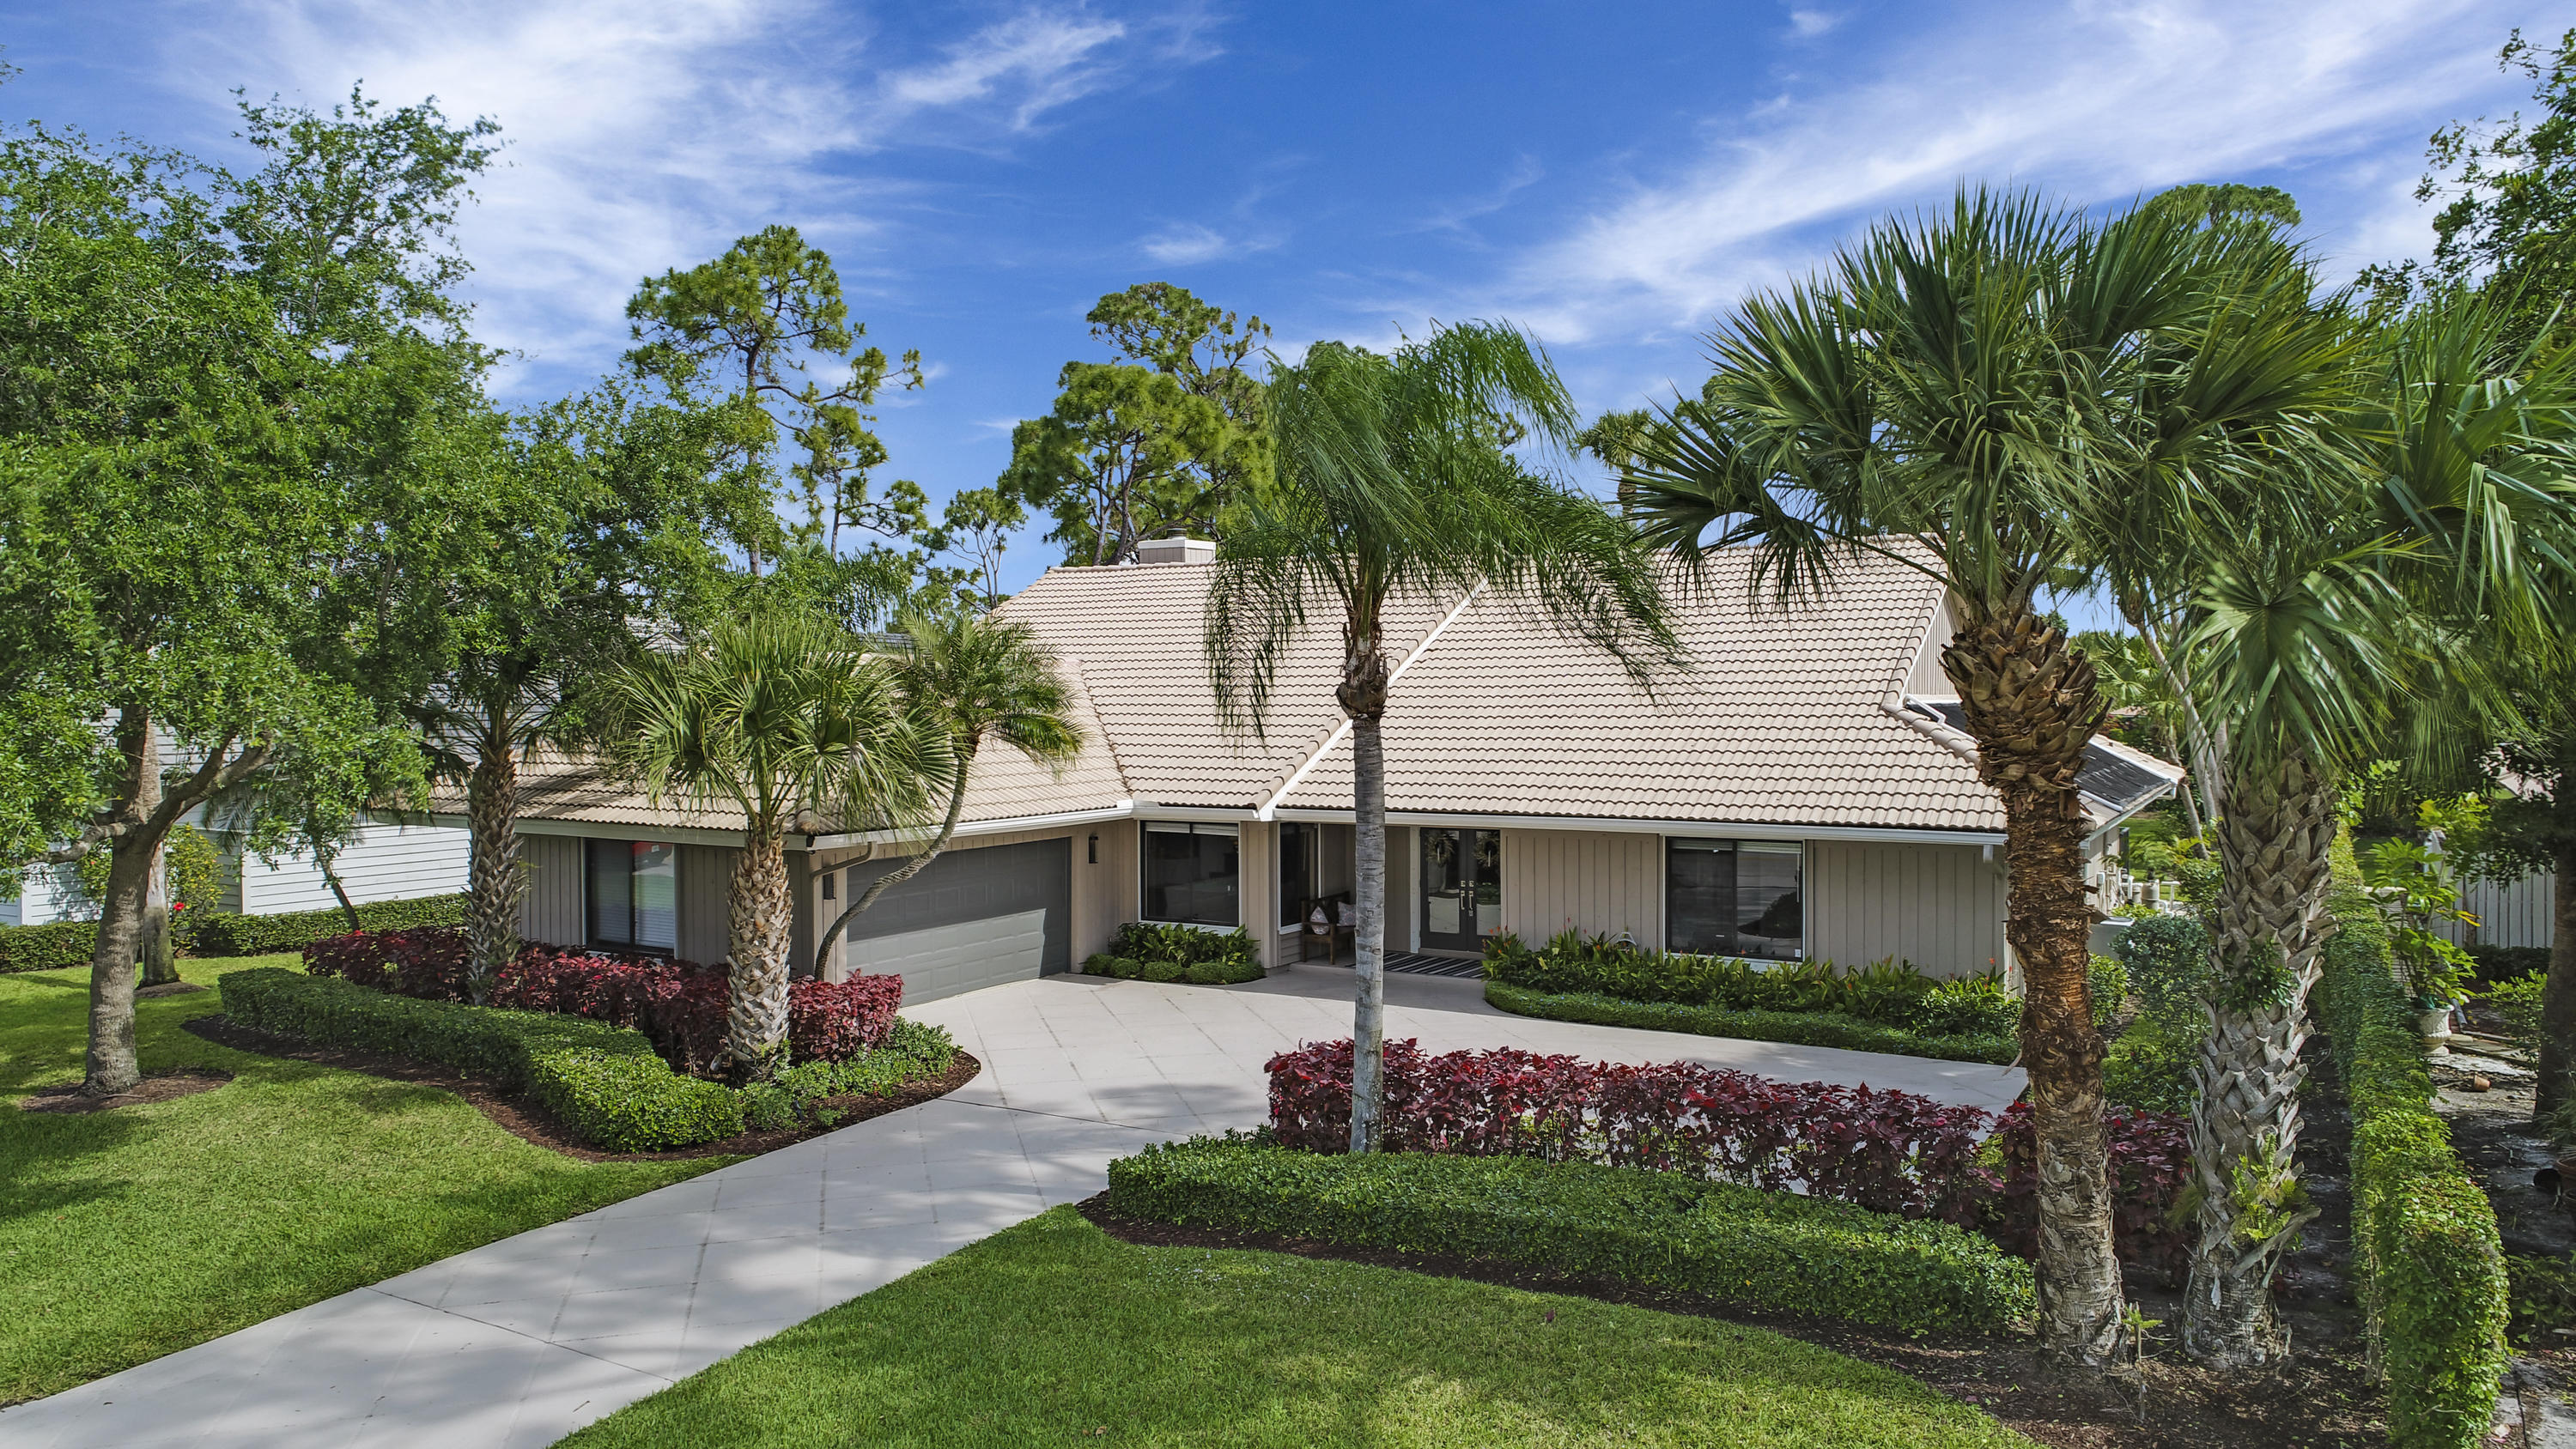 Photo of 21 Rabbits Run, Palm Beach Gardens, FL 33418